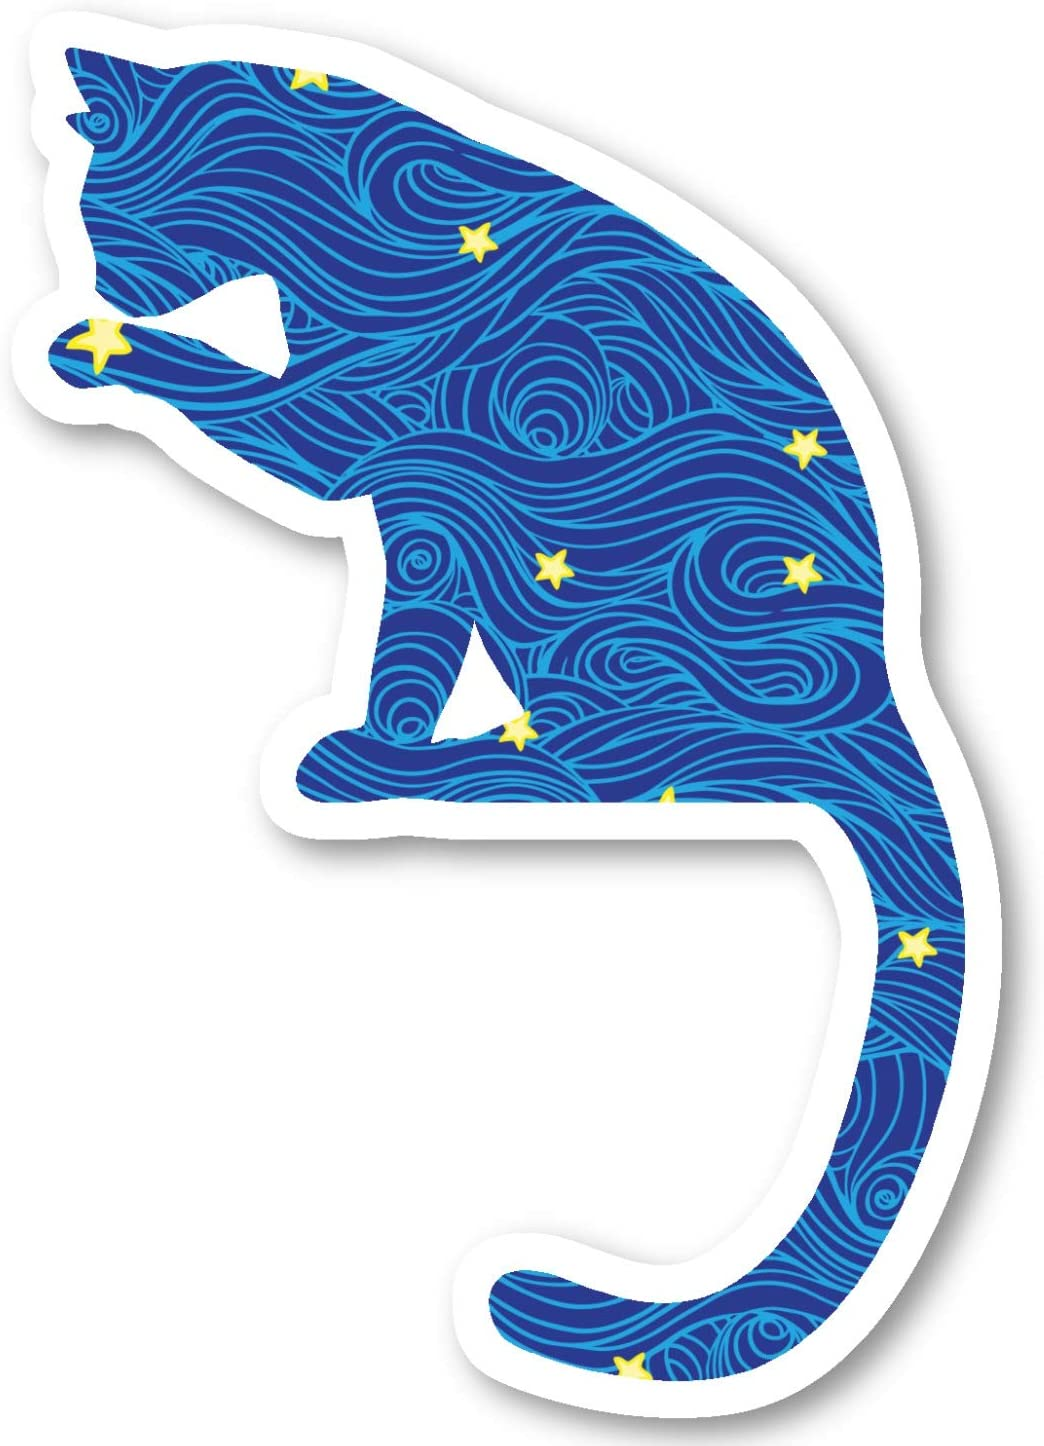 "Cat Sitting Sticker Blue Spirals and Stars Stickers - 2 Pack - Laptop Stickers - 2.5"" Vinyl Decal - Laptop, Phone, Tablet Vinyl Decal Sticker (2 Pack) S81905"